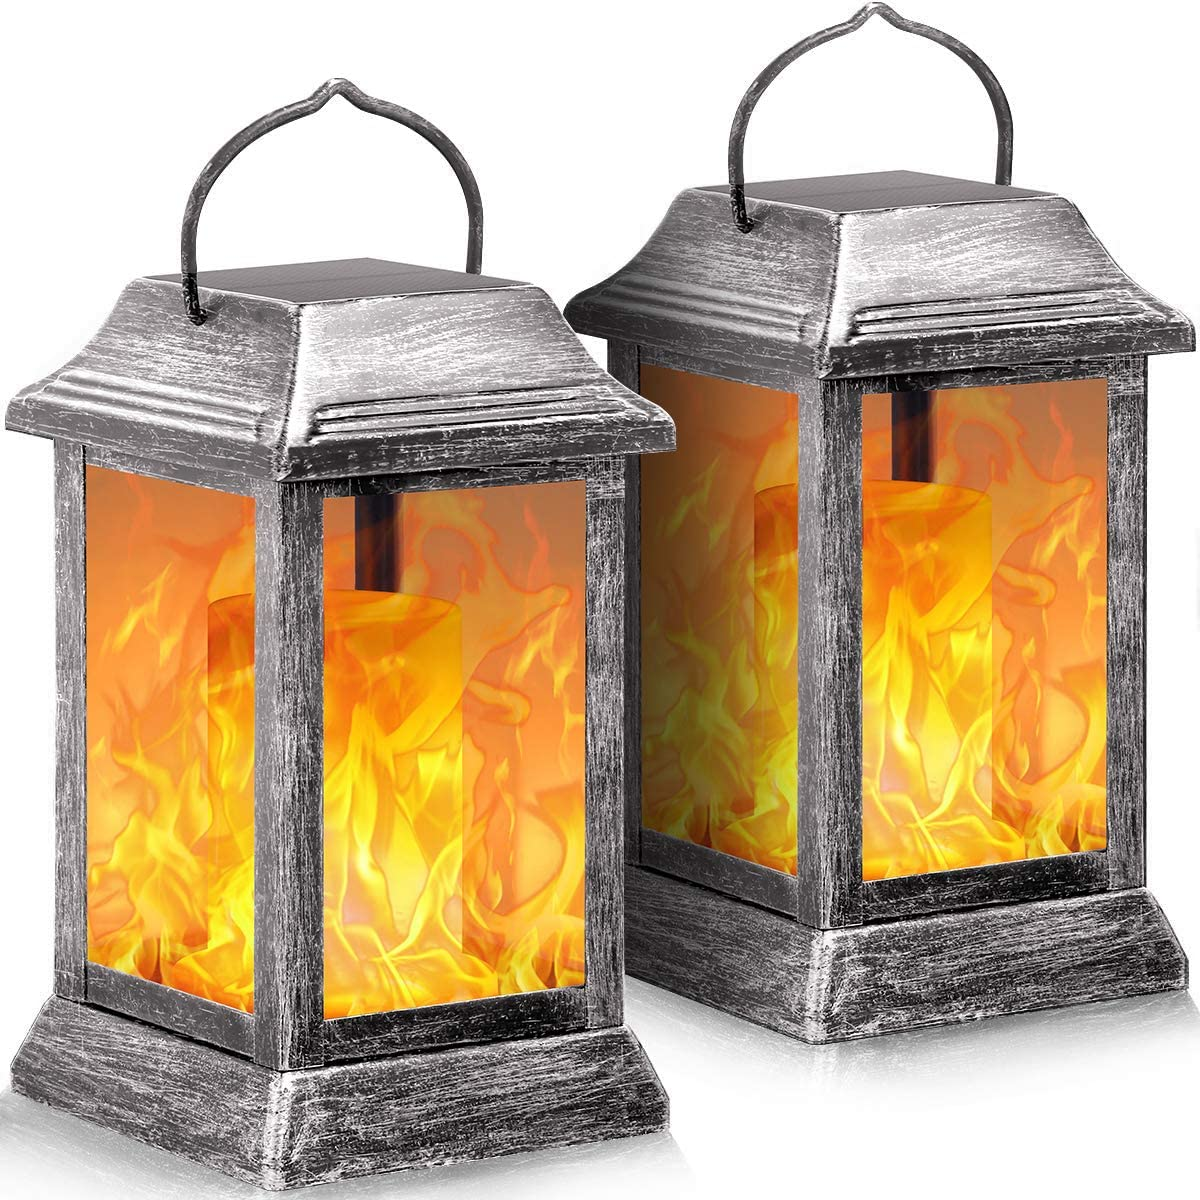 TomCare Solar Lights Metal Flickering Flame Solar Lantern Hanging Lanterns Outdoor Decorative Lighting Heavy Duty Solar Powered Waterproof Umbrella Lights for Garden Patio Pathway Deck Yard, 2 Pack